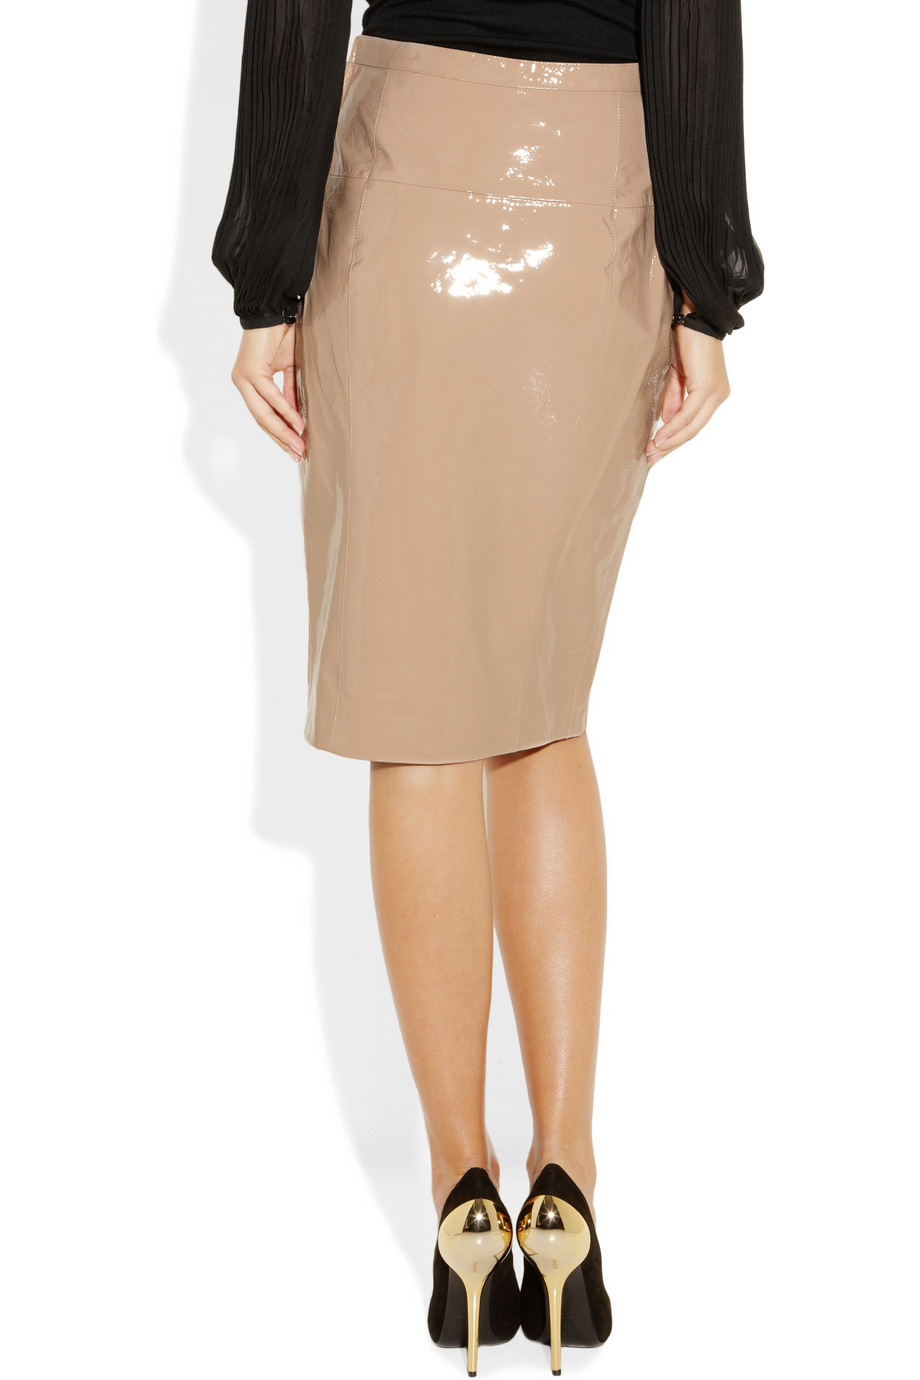 Emilio pucci Patent-leather pencil skirt in Pink | Lyst